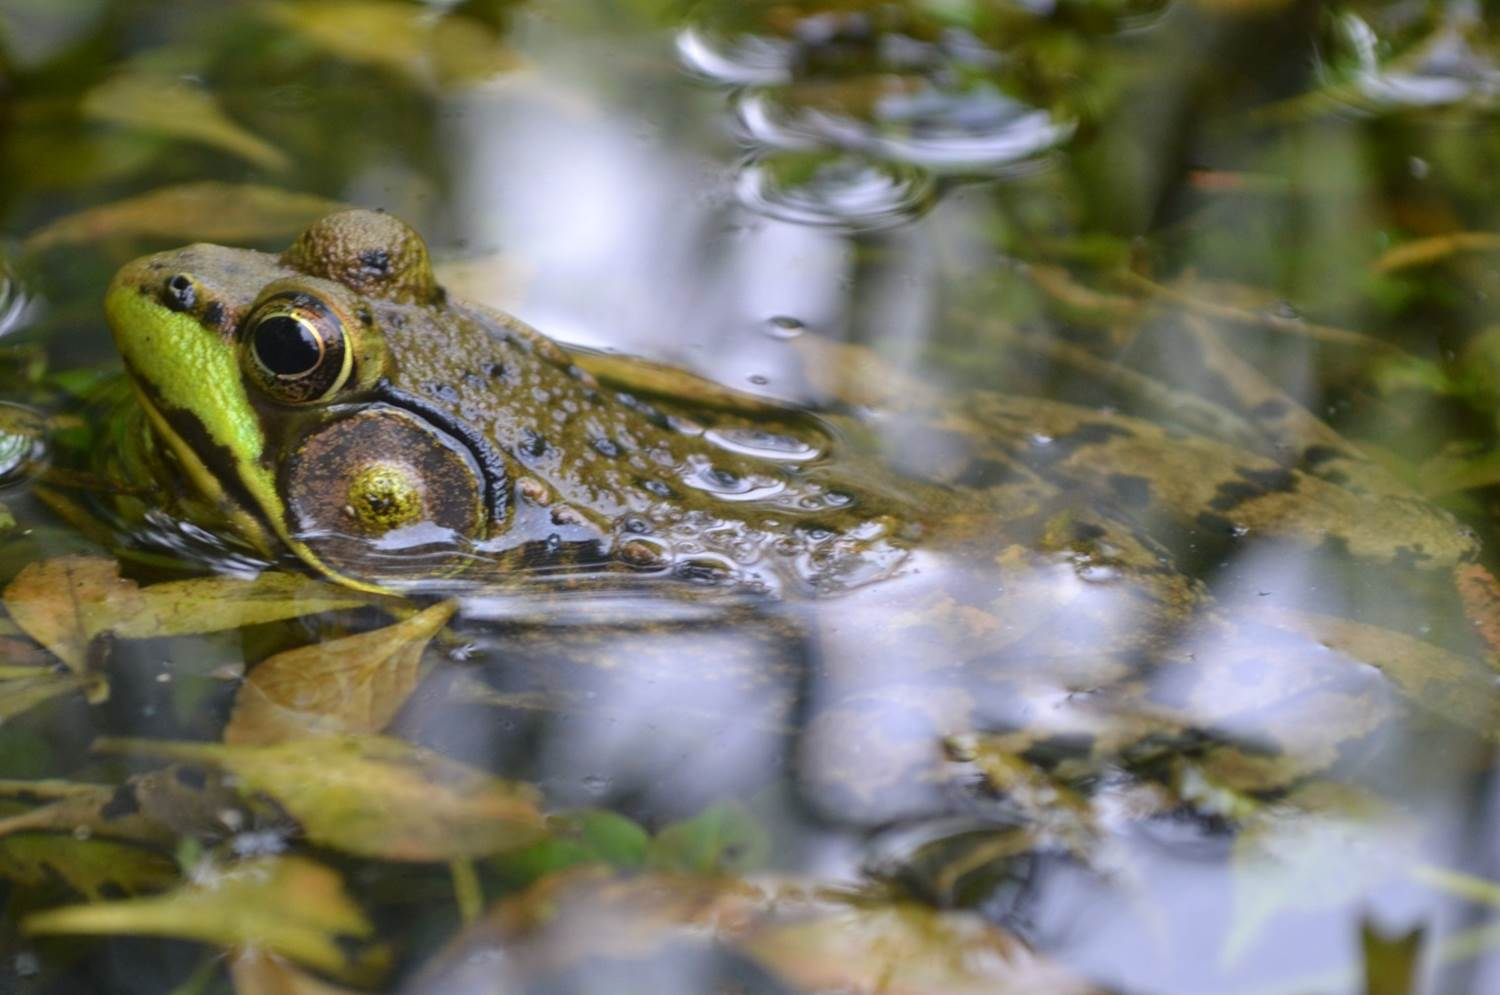 A frog's head coming out of the water.